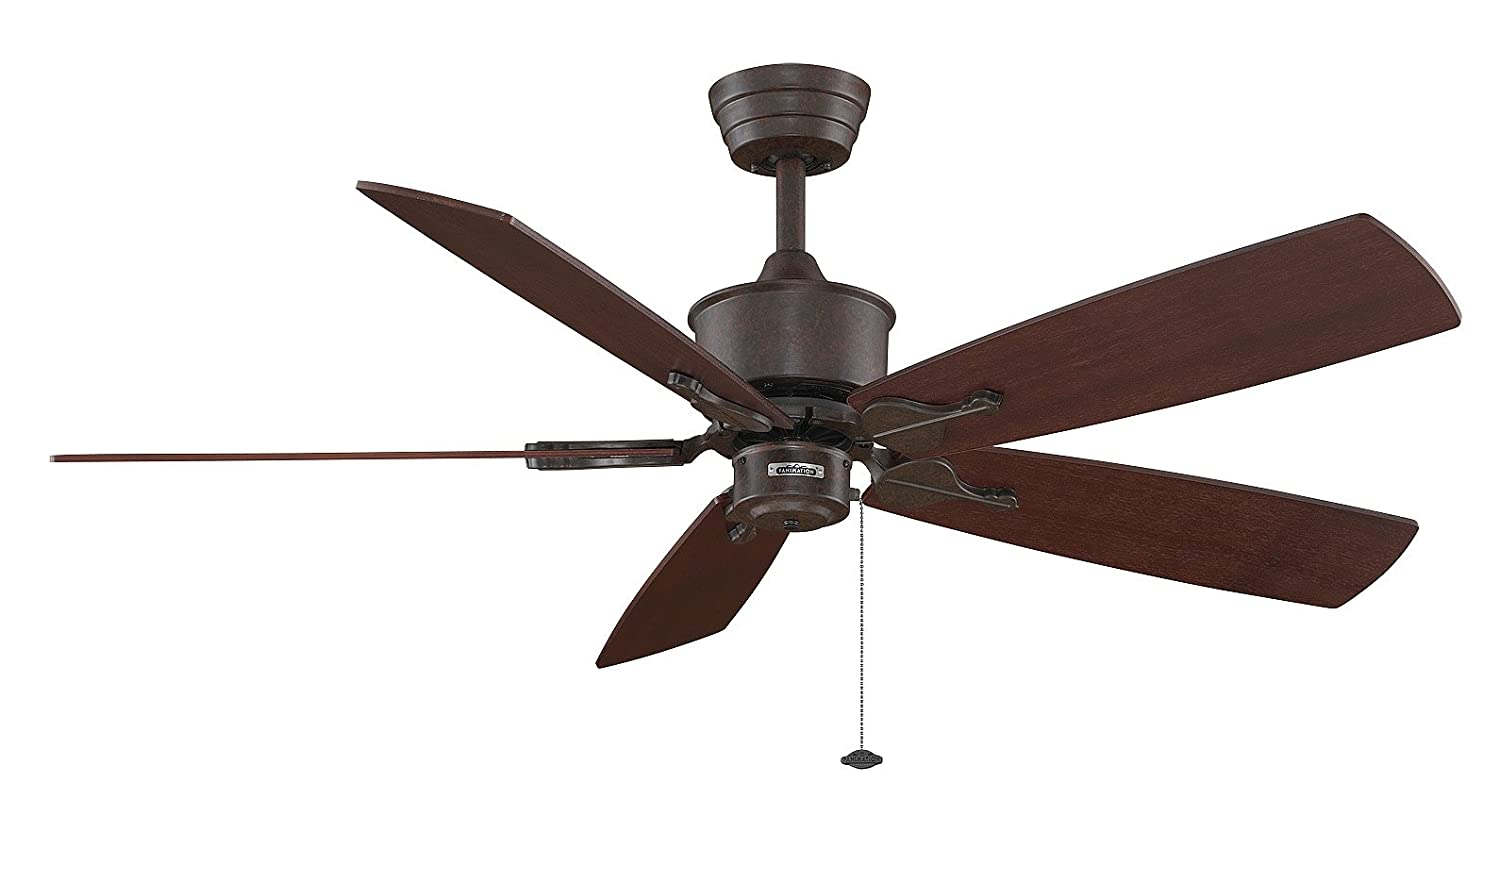 Fanimation fp320ab1 islander 5 blade ceiling fan in antique brass fanimation fp320ab1 islander 5 blade ceiling fan in antique brass amazon aloadofball Images